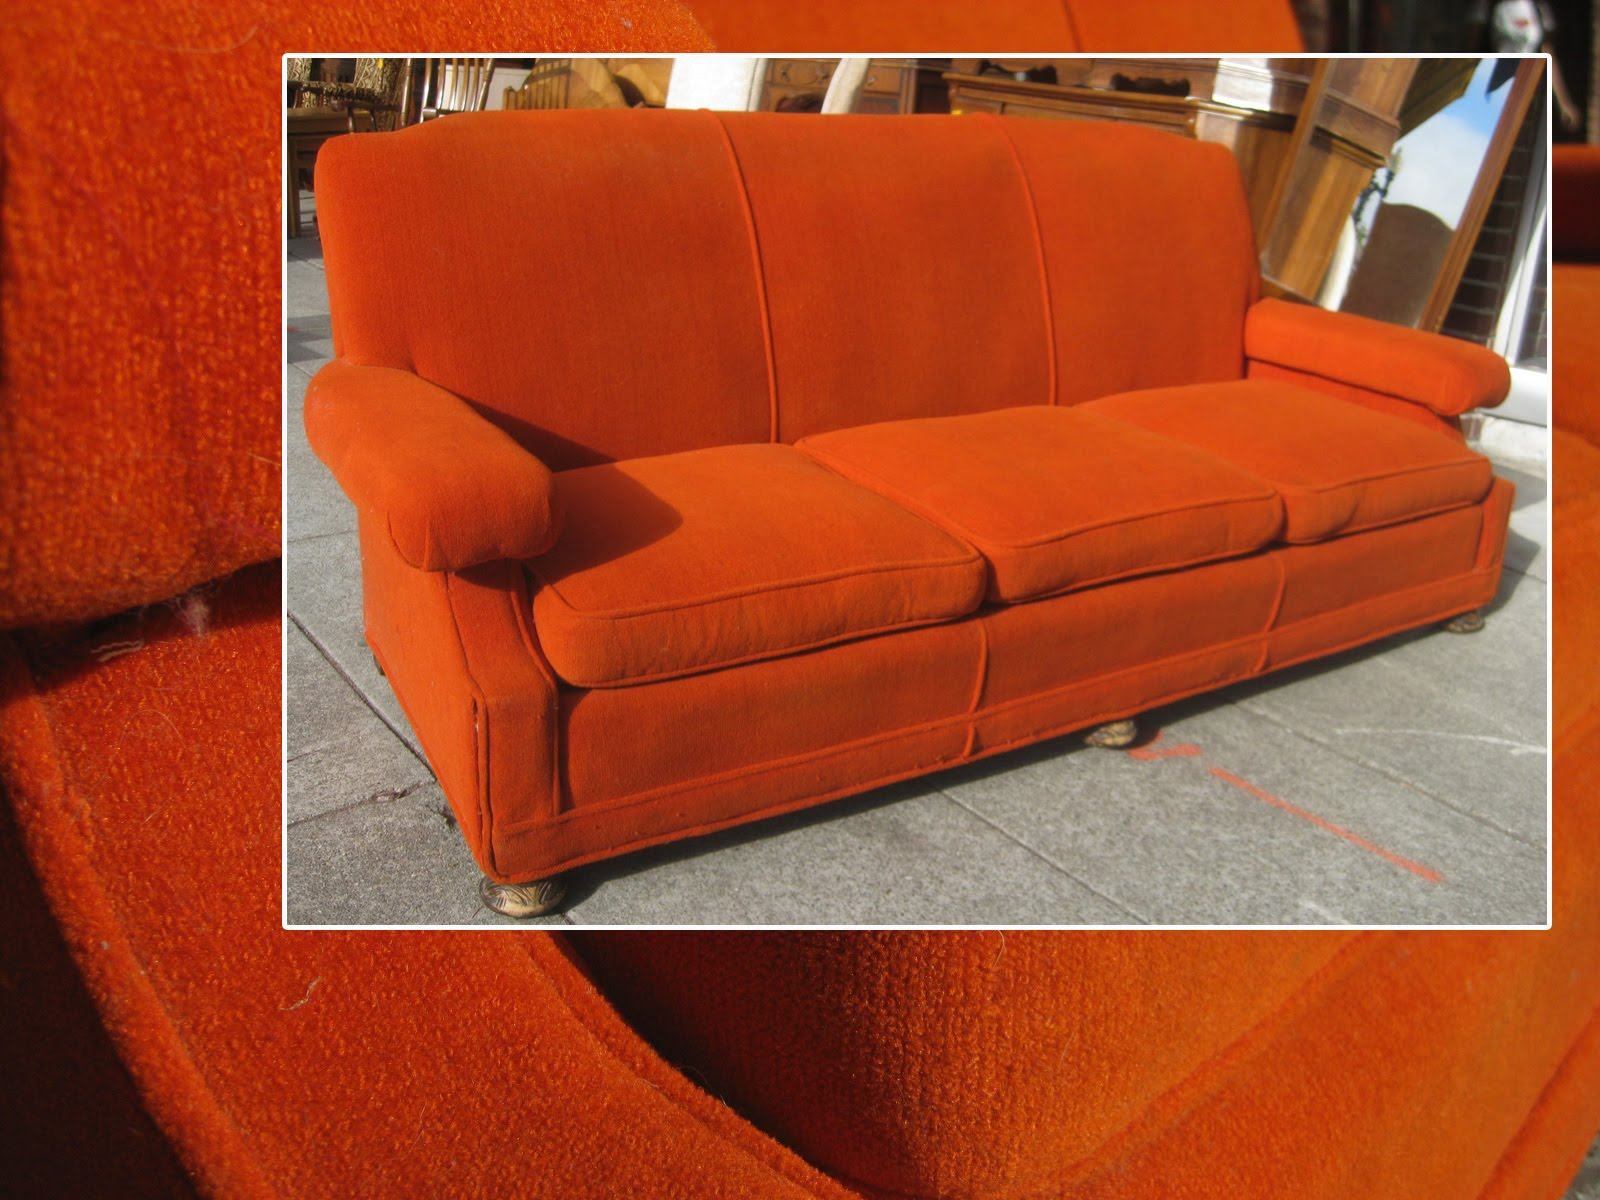 Uhuru Furniture Collectibles Sold Orange 1930s Sofa